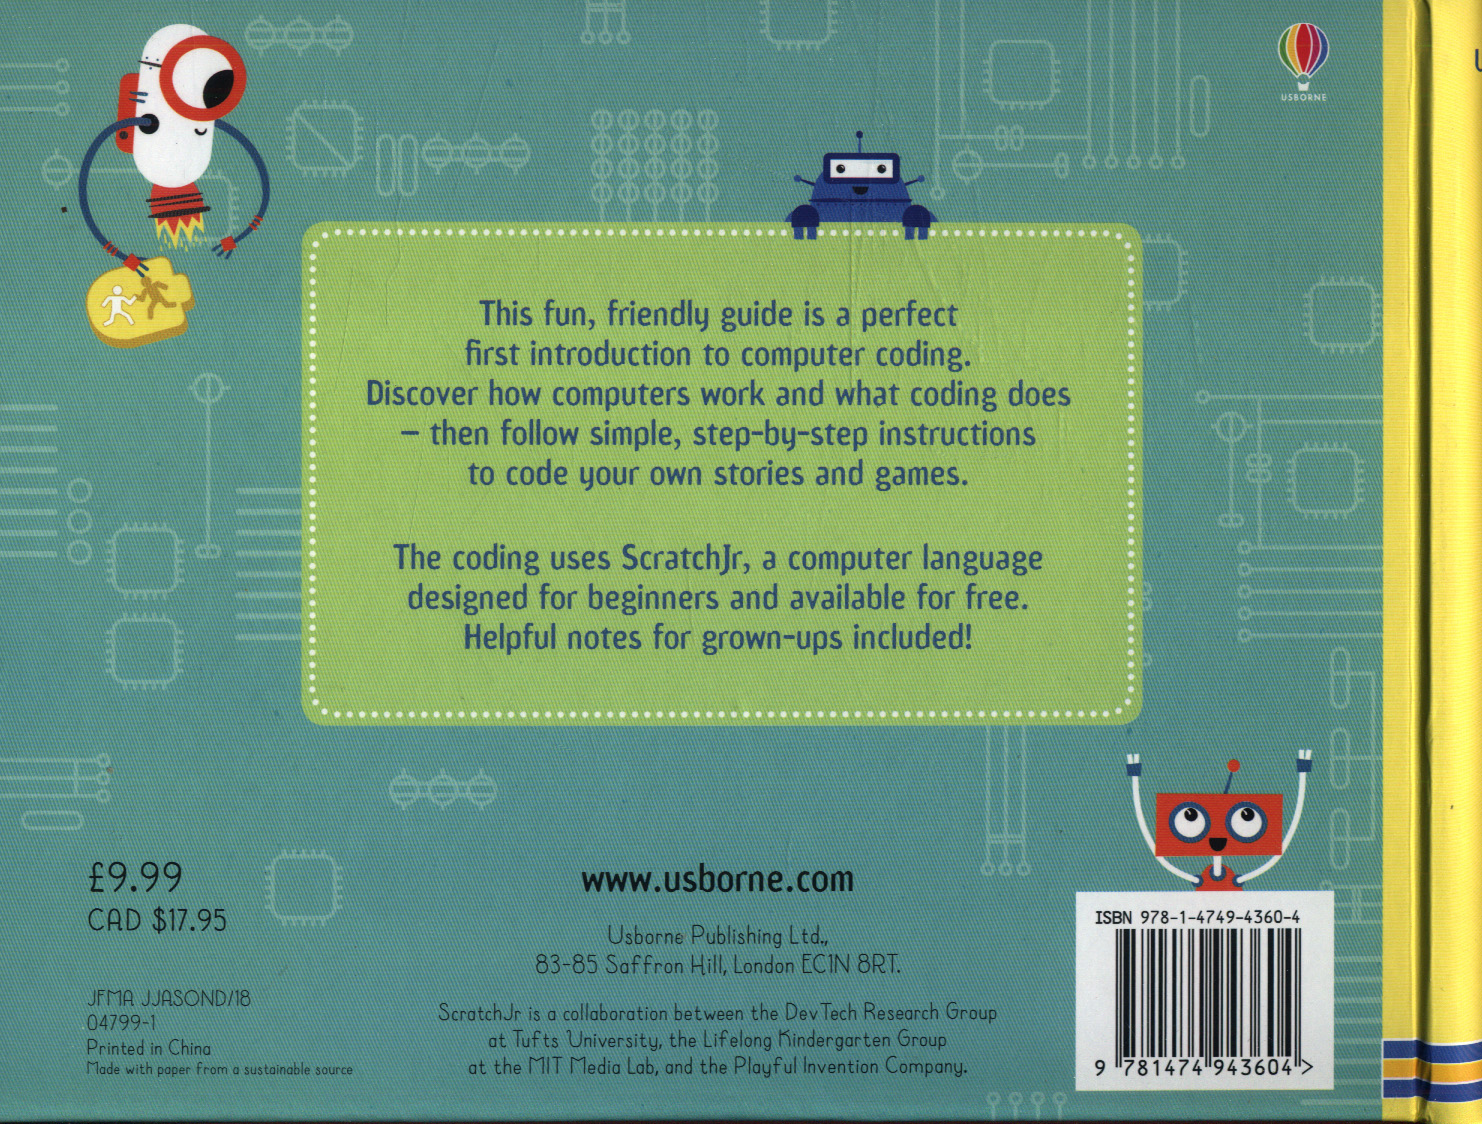 Usborne my first computer coding book with ScratchJr by